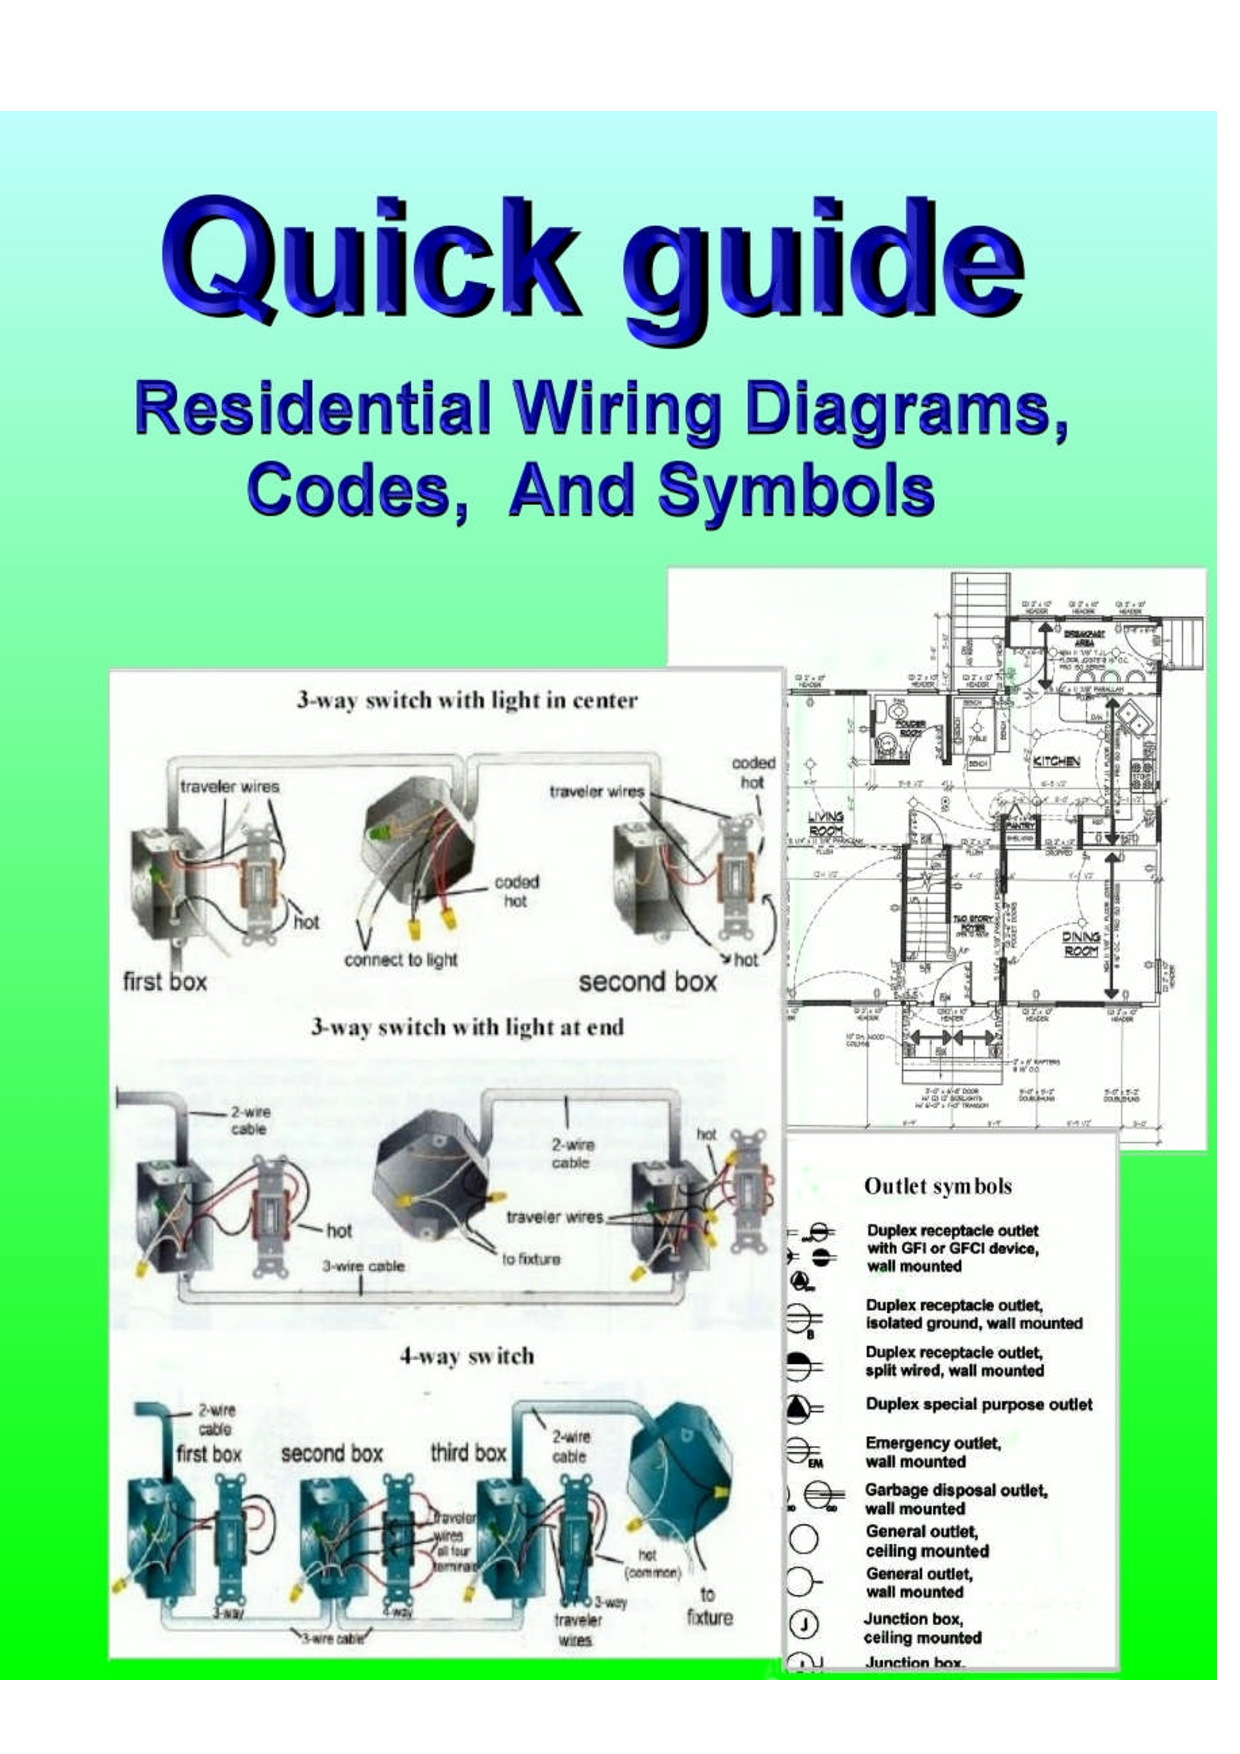 garbage disposal electrical schematic wiring diagram schematic library garbage disposal troubleshooting garbage disposal electrical schematic wiring diagram wiring